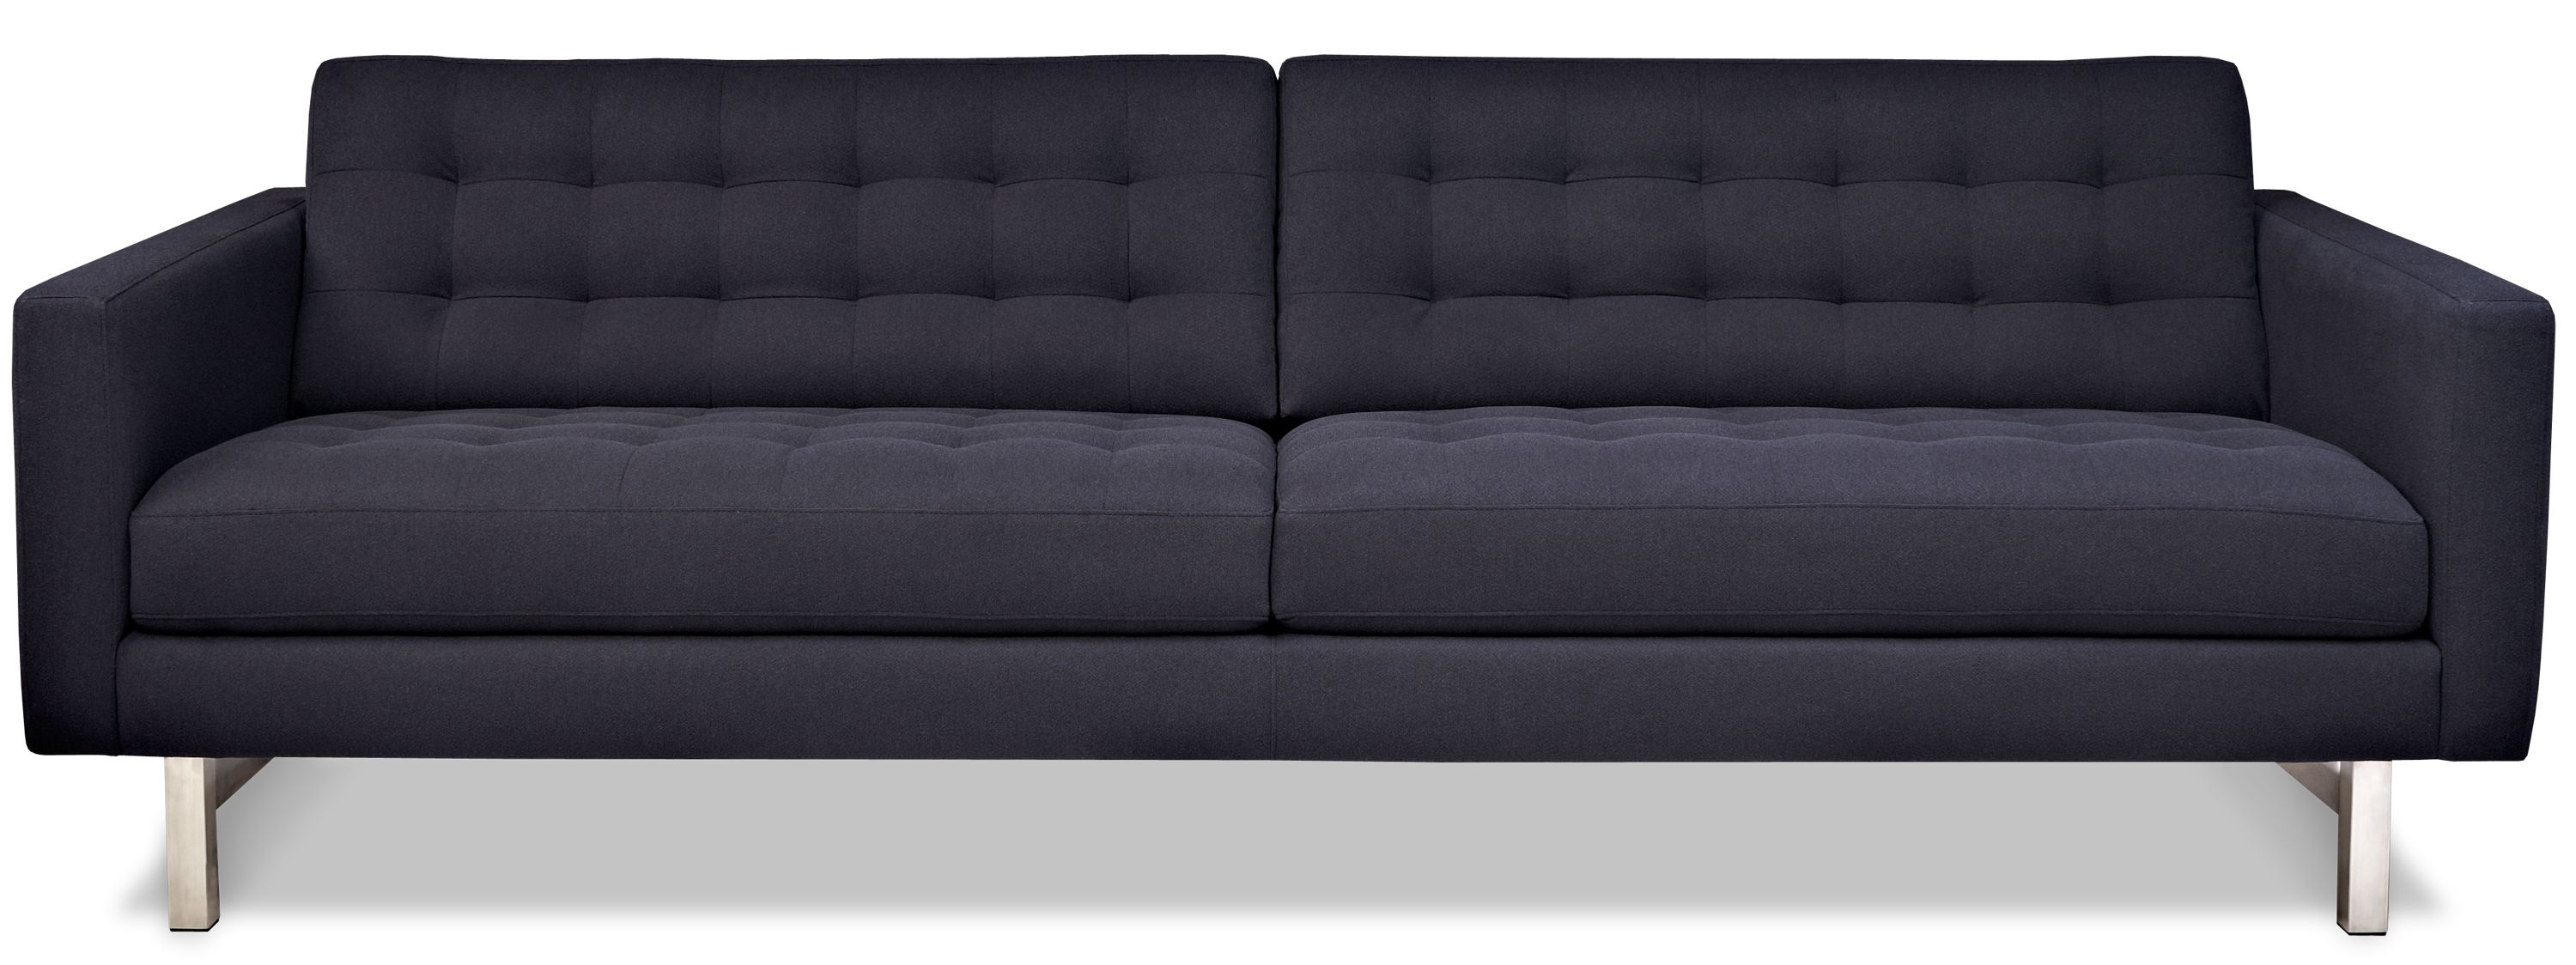 Superbe American Leather Parker Sofa Is Ordered And On The Way, Though In Ultra  Suede Style